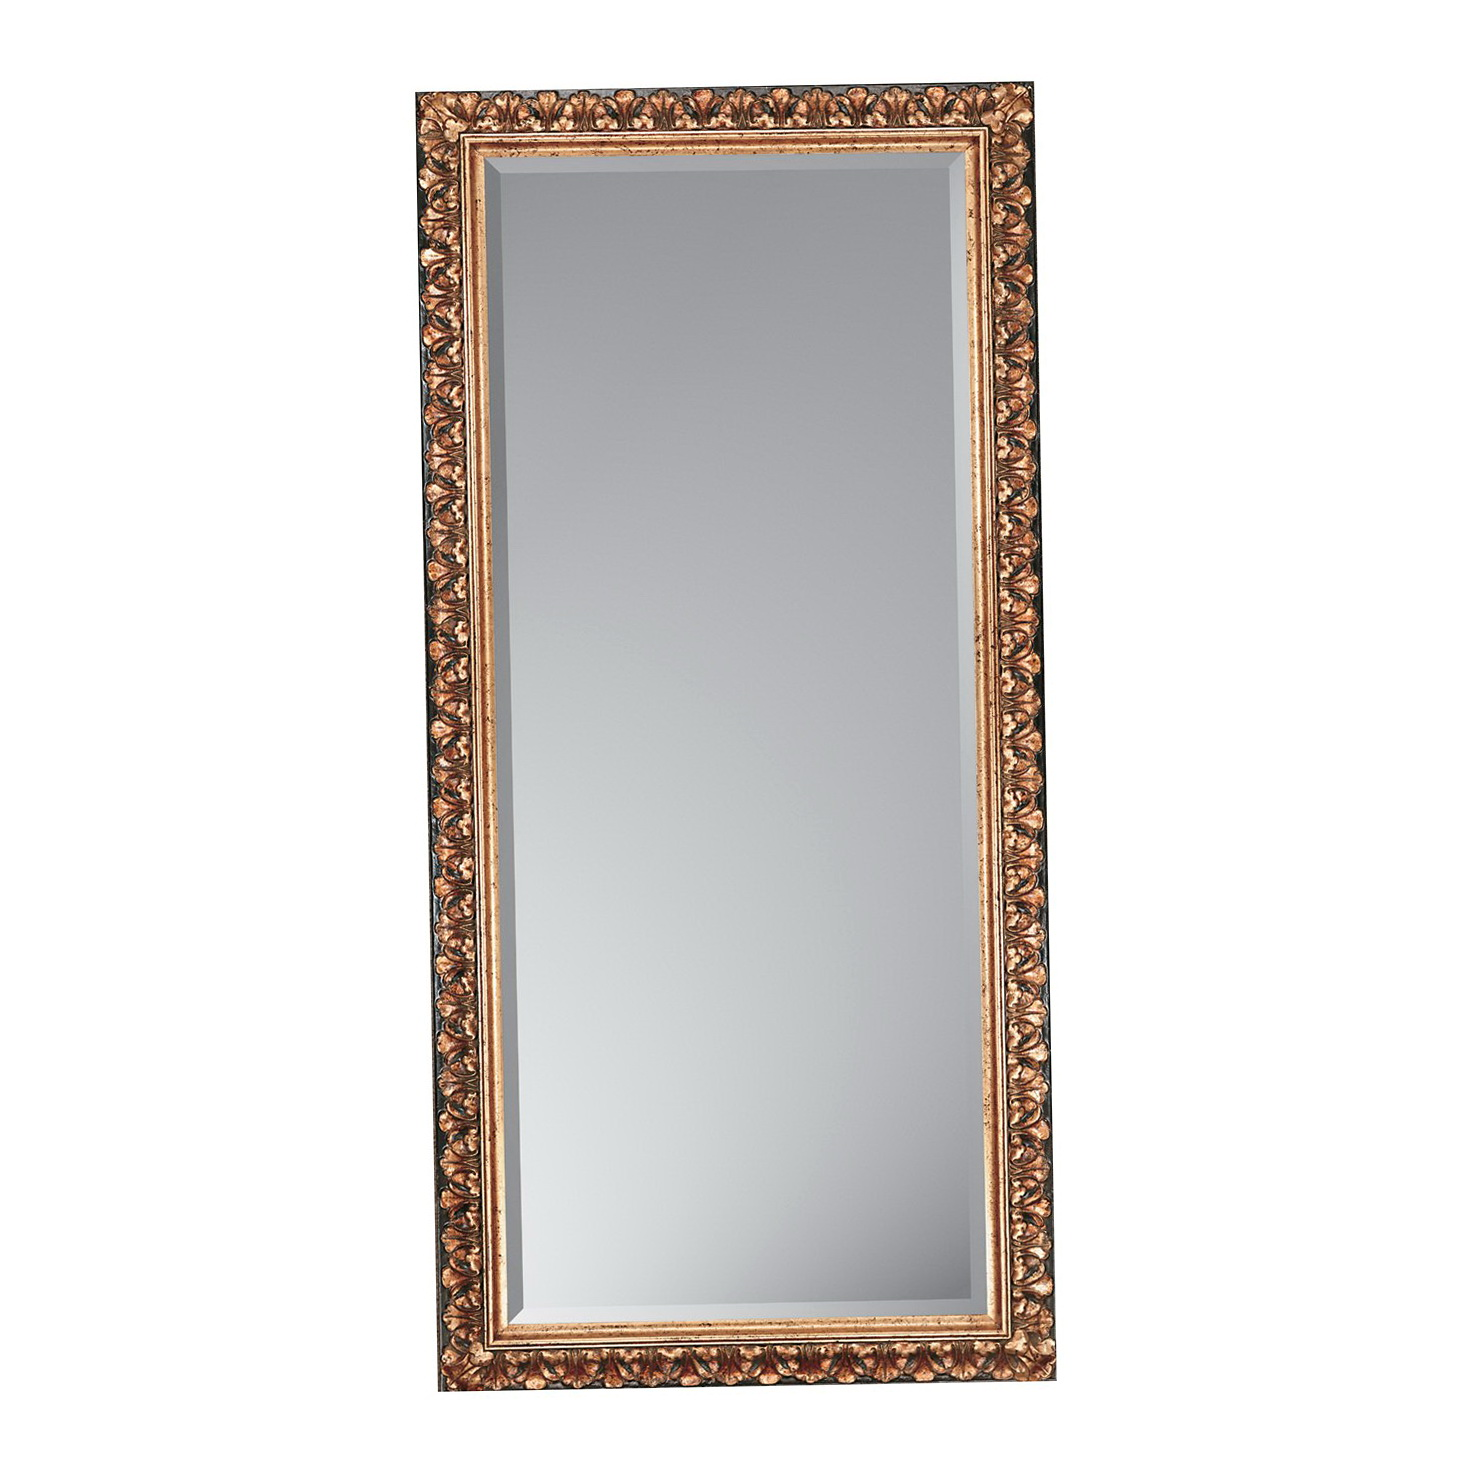 Antique Gold Floor Mirror